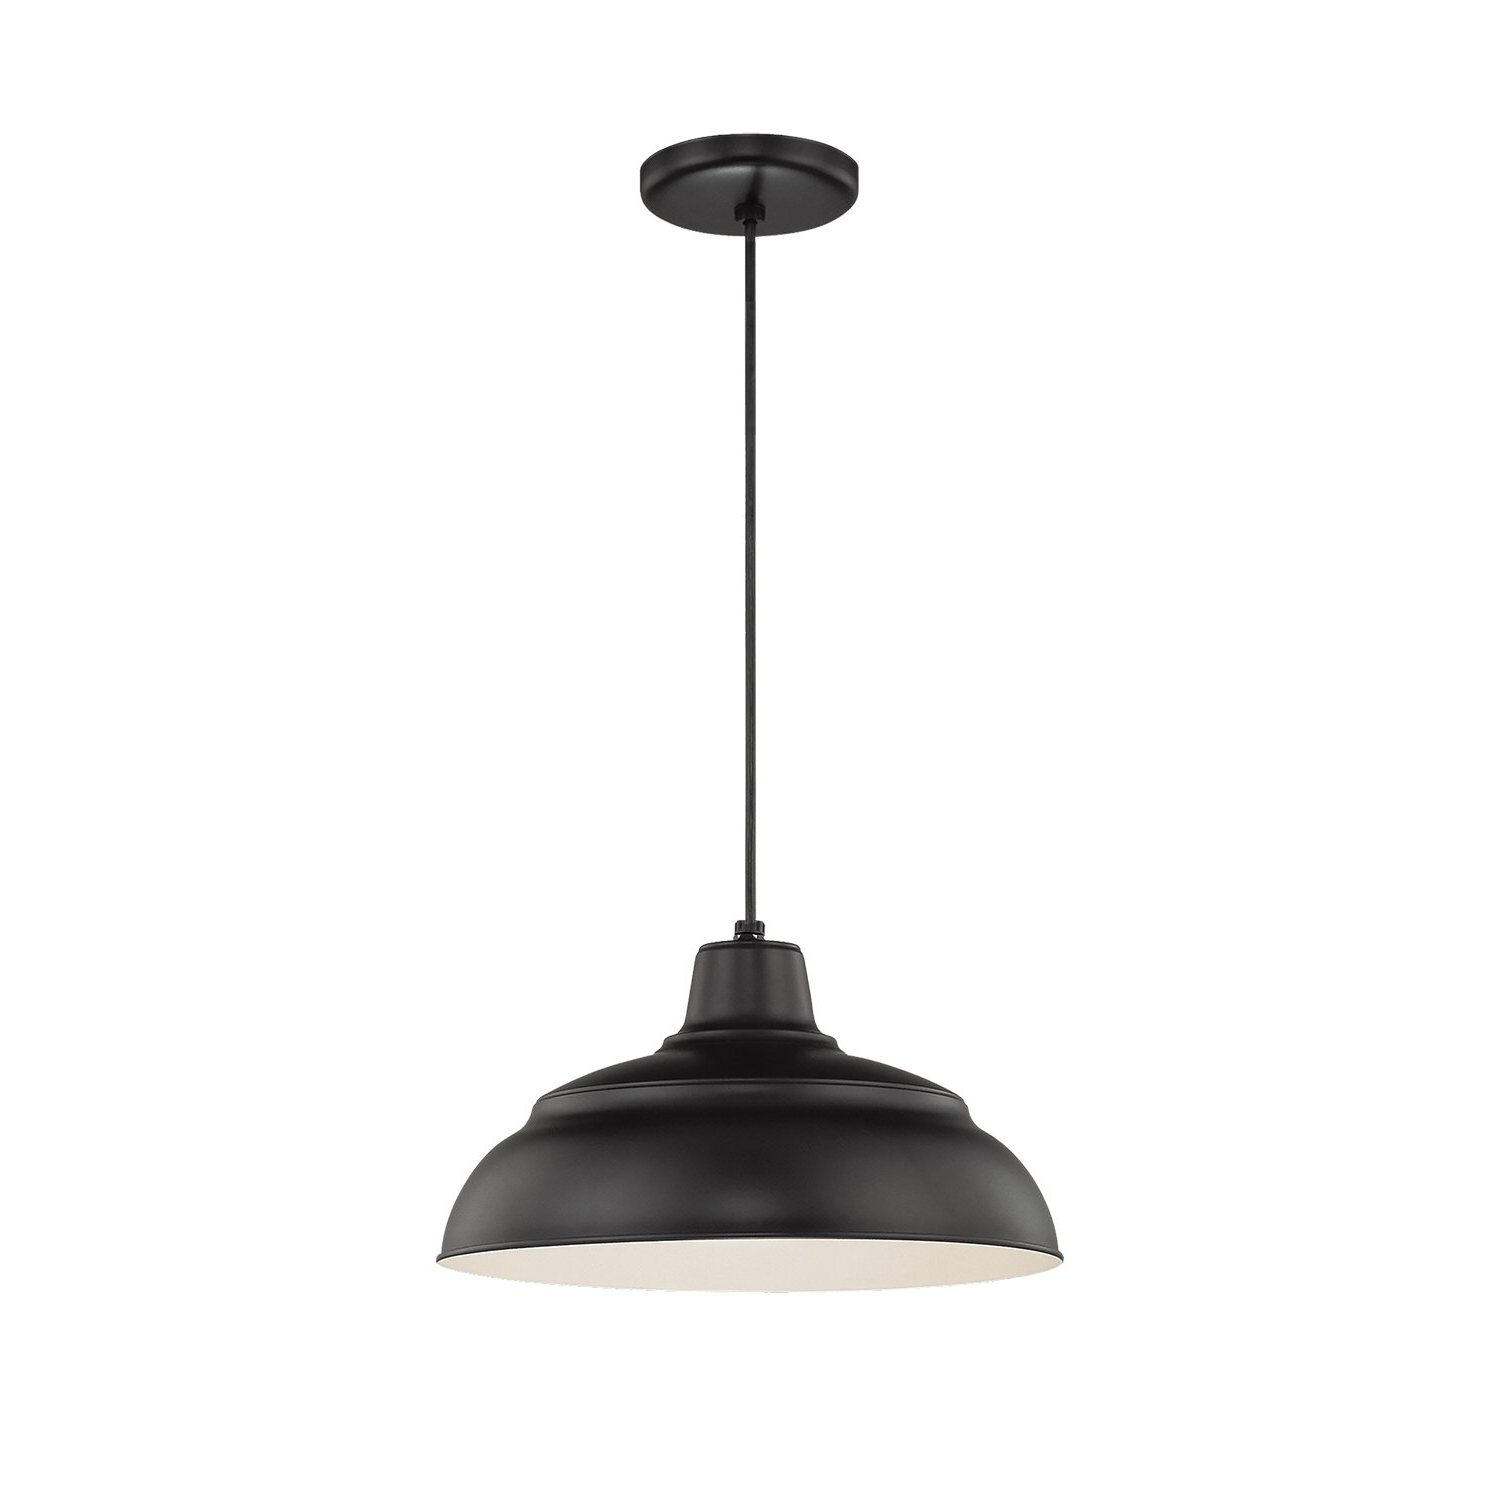 2020 Stetson 1 Light Bowl Pendant Regarding Adriana Black 1 Light Single Dome Pendants (View 11 of 20)